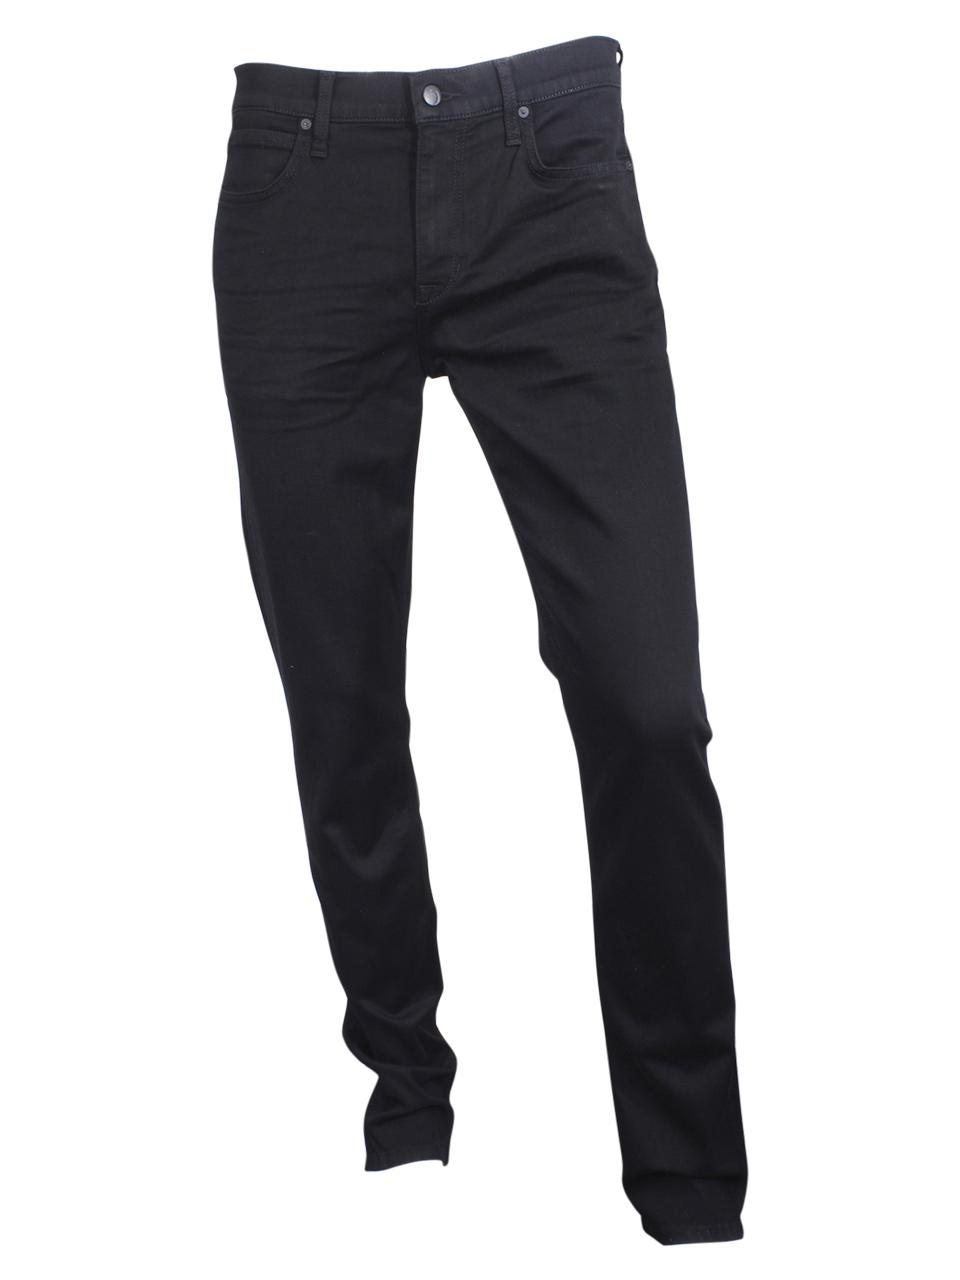 Image of Joe's Jeans Men's The Brixton Kinetic Straight + Narrow Jeans - Griffith - 32x34